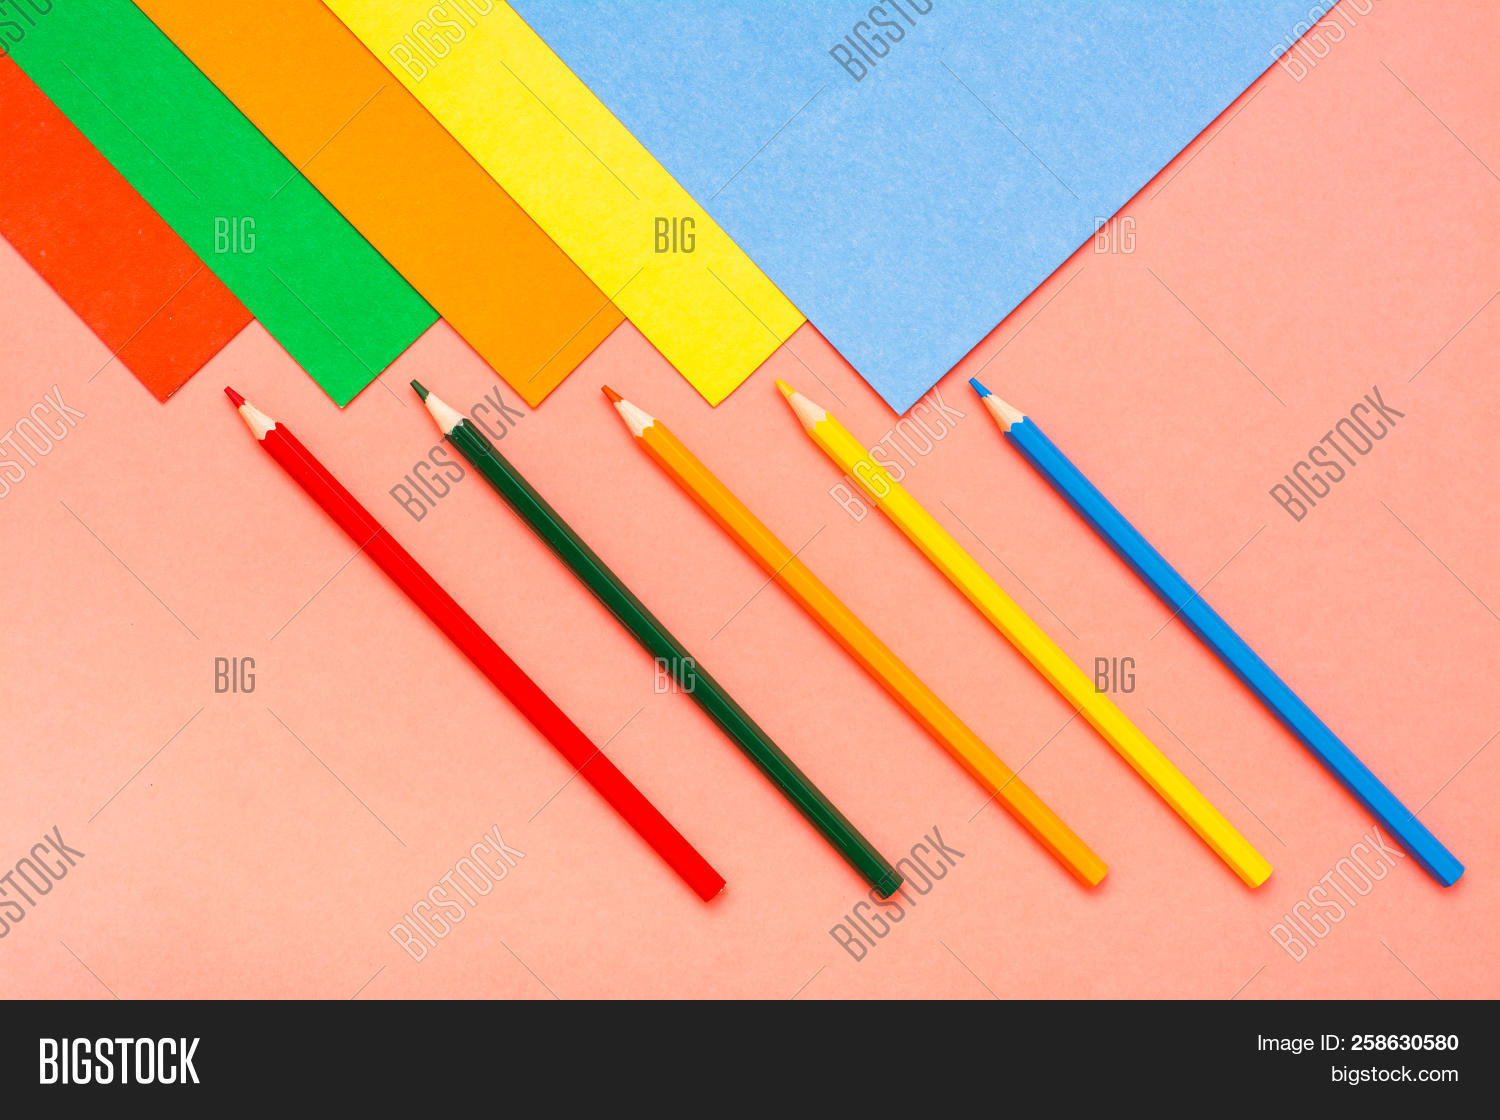 abstract,artistic,artwork,backdrop,background,blank,blue,bright,cardboard,color,colored,colorful,coloring,colour,composition,concept,copy,creative,creativity,decor,decoration,design,draw,empty,green,group,horizontal,object,office,orange,palette,paper,pattern,pencil,pile,pink,rainbow,red,row,shape,sheet,space,spectrum,striped,texture,variety,vibrant,yellow